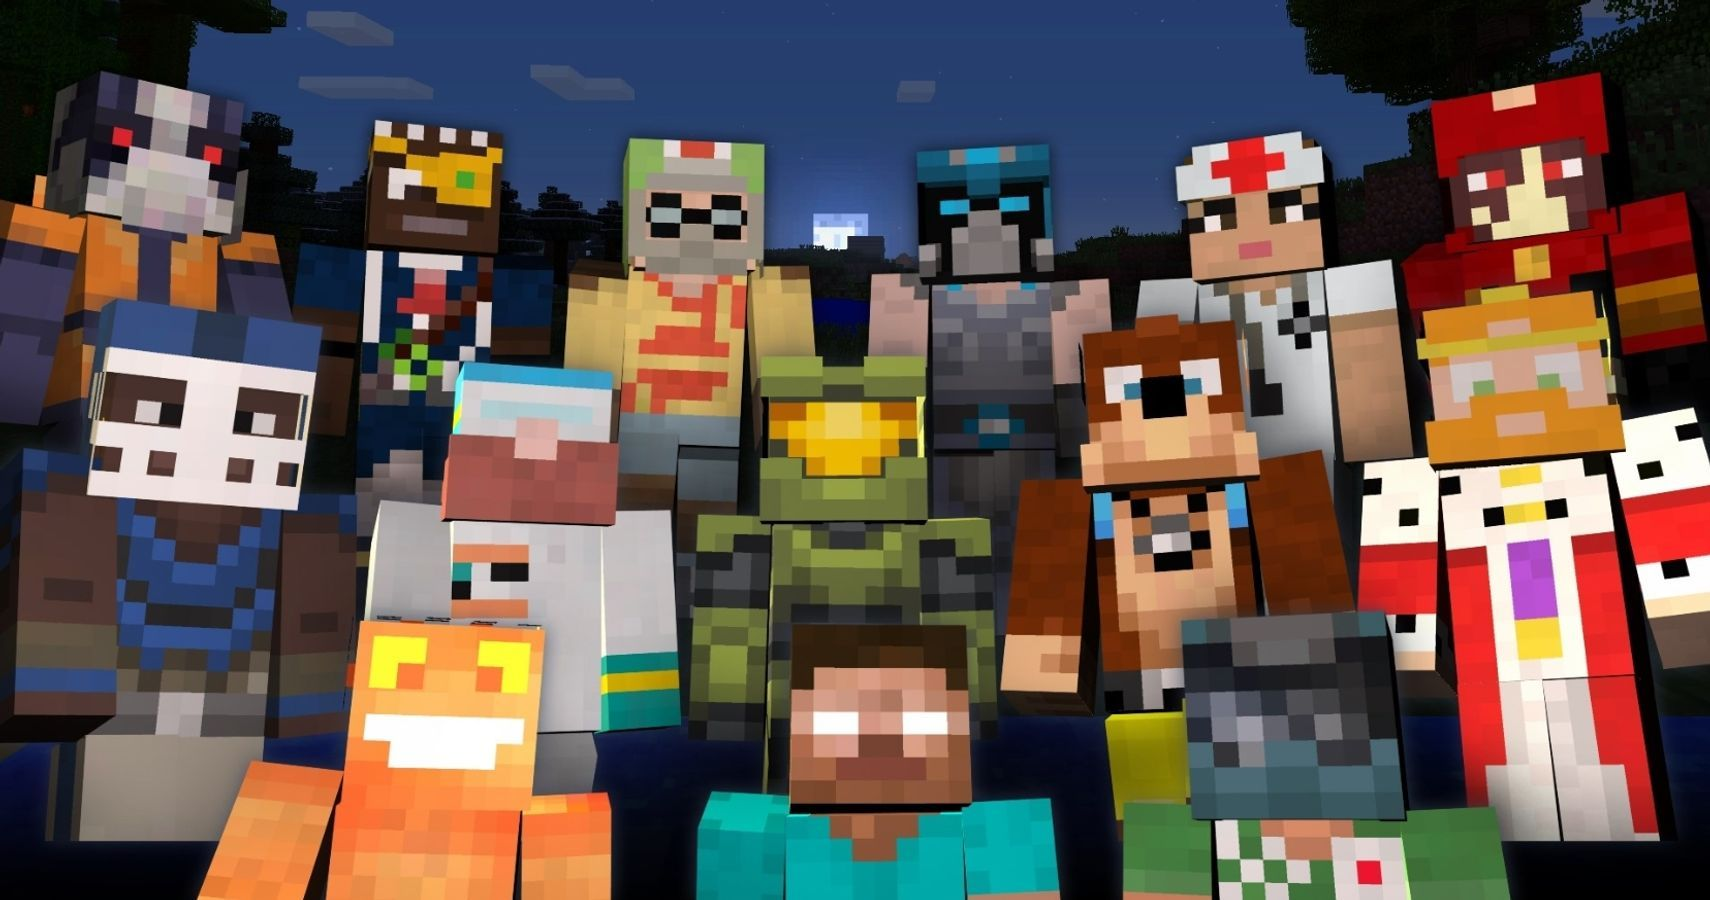 The 10 Best Skin Packs For Minecraft Bedrock Edition Thegamer